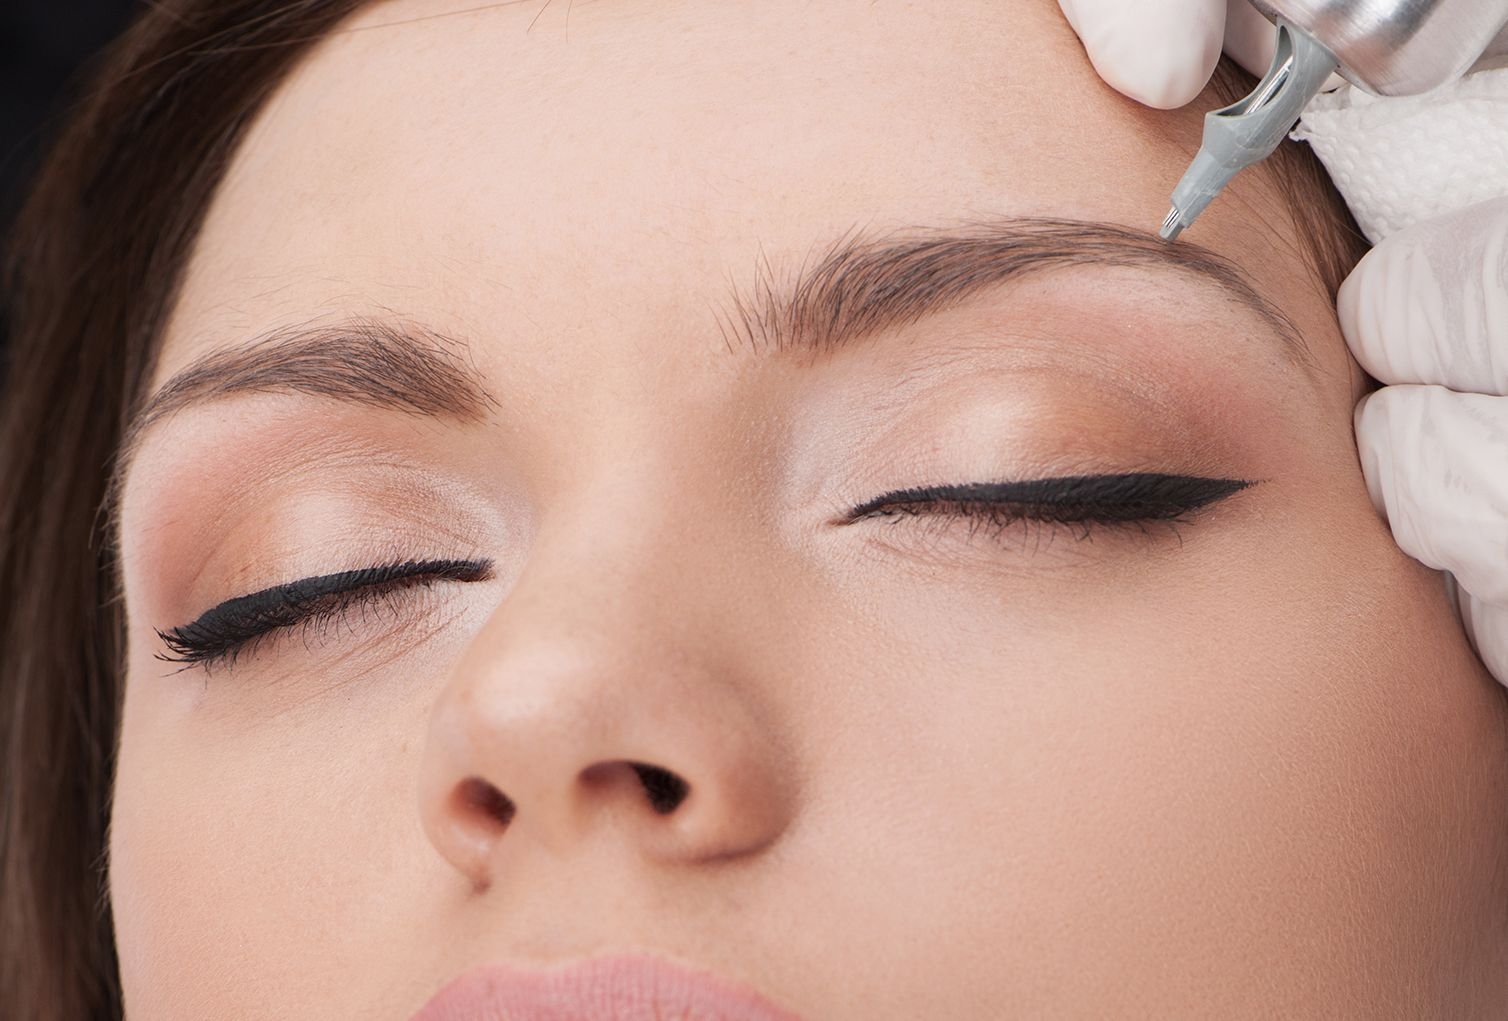 This Microblading Horror Story Is Going to Give You